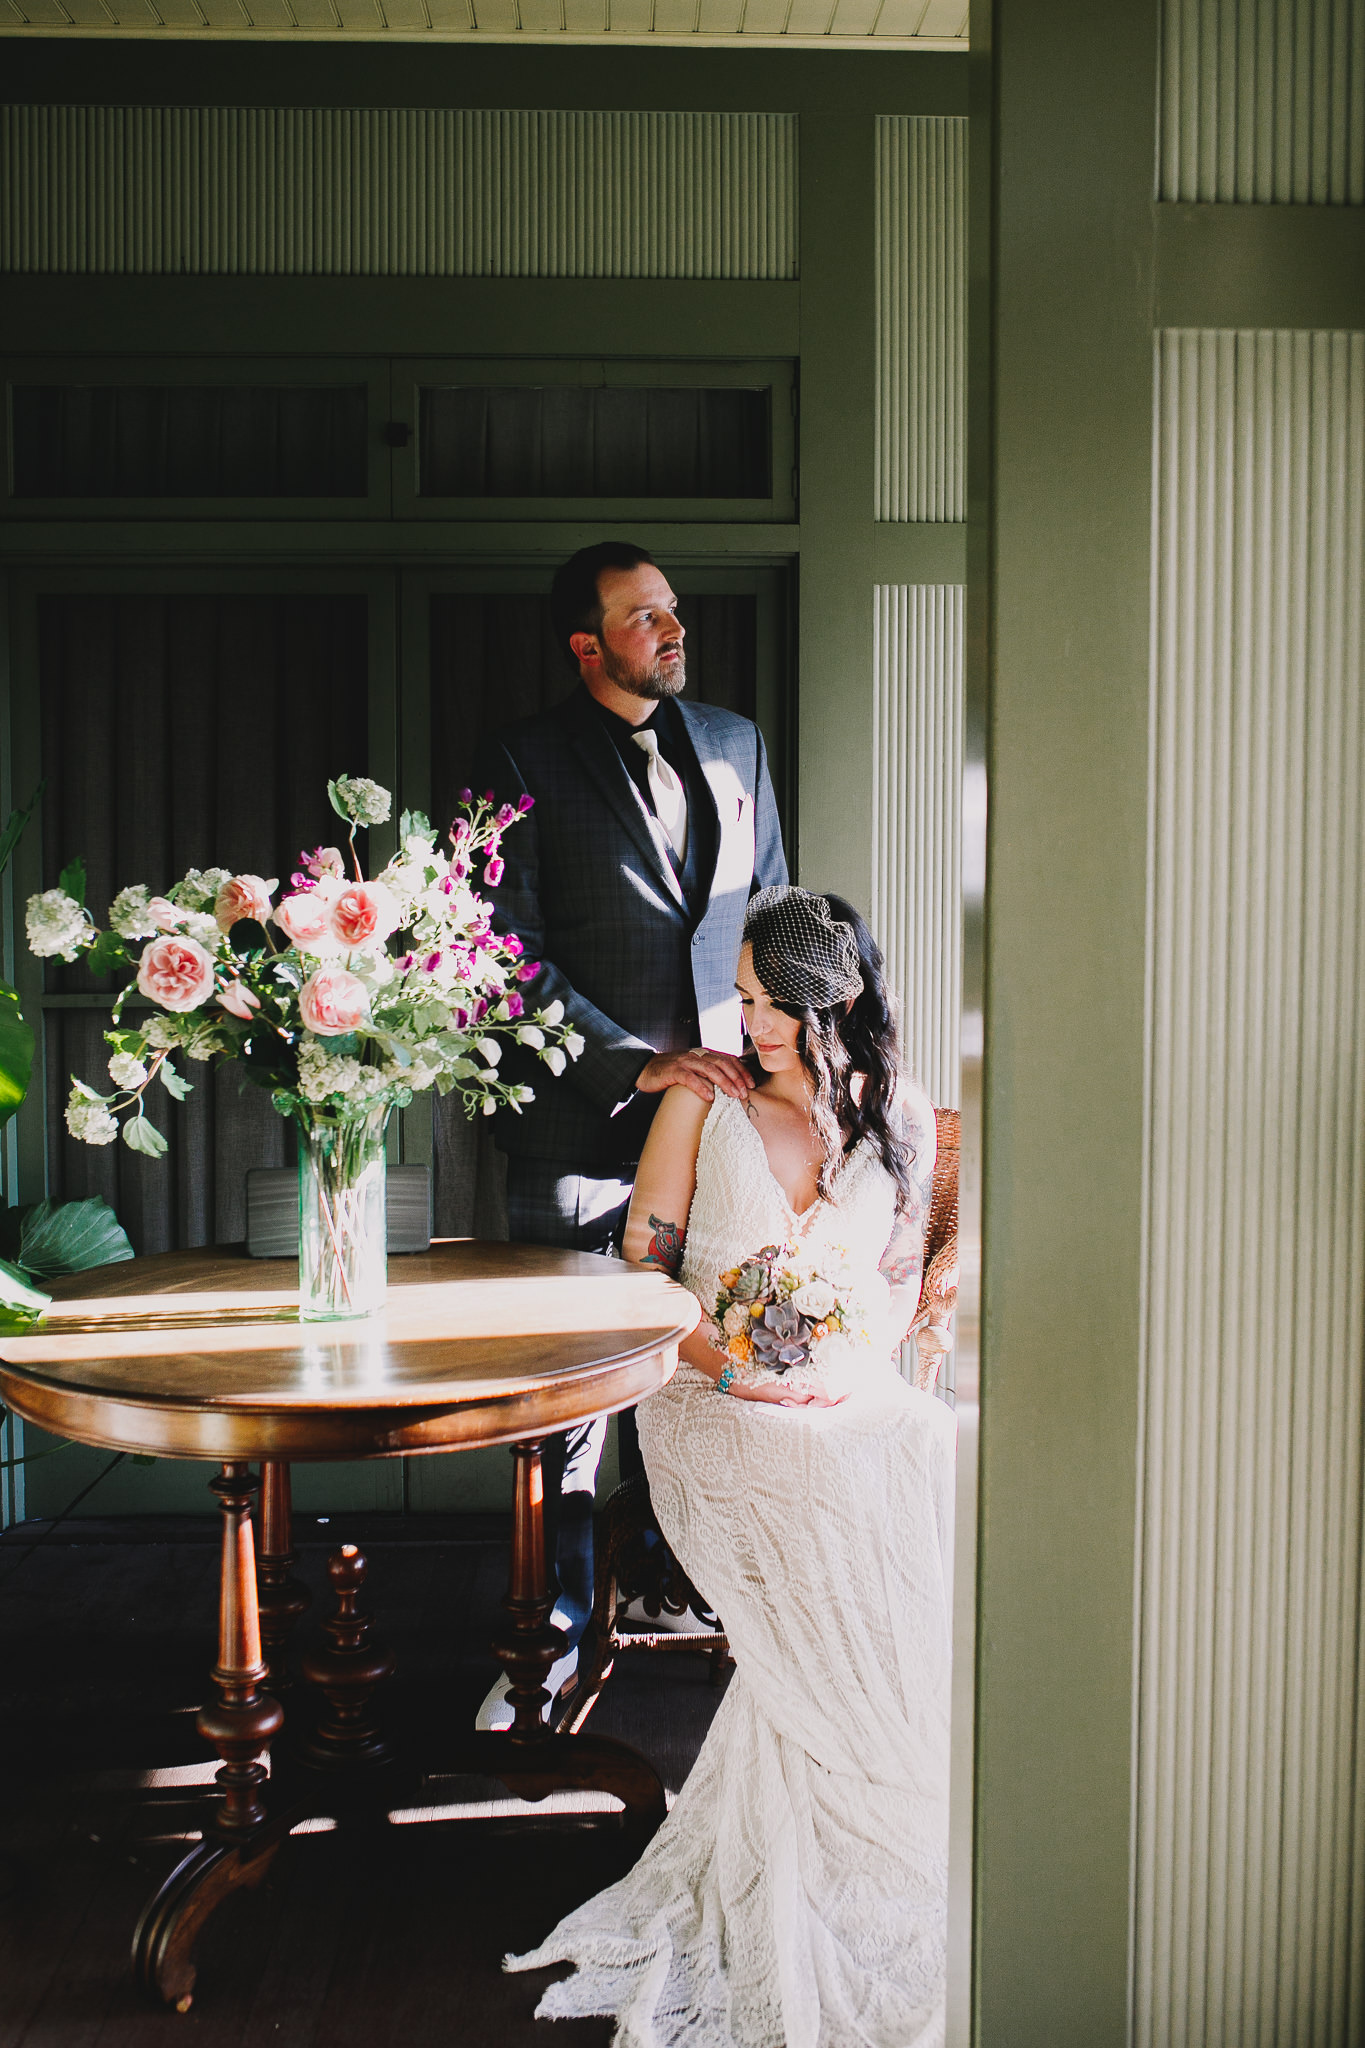 Archer Inspired Photography Sara and Aaron Winchester Mystery House NorCal San Jose California Wedding Photographer-264.jpg